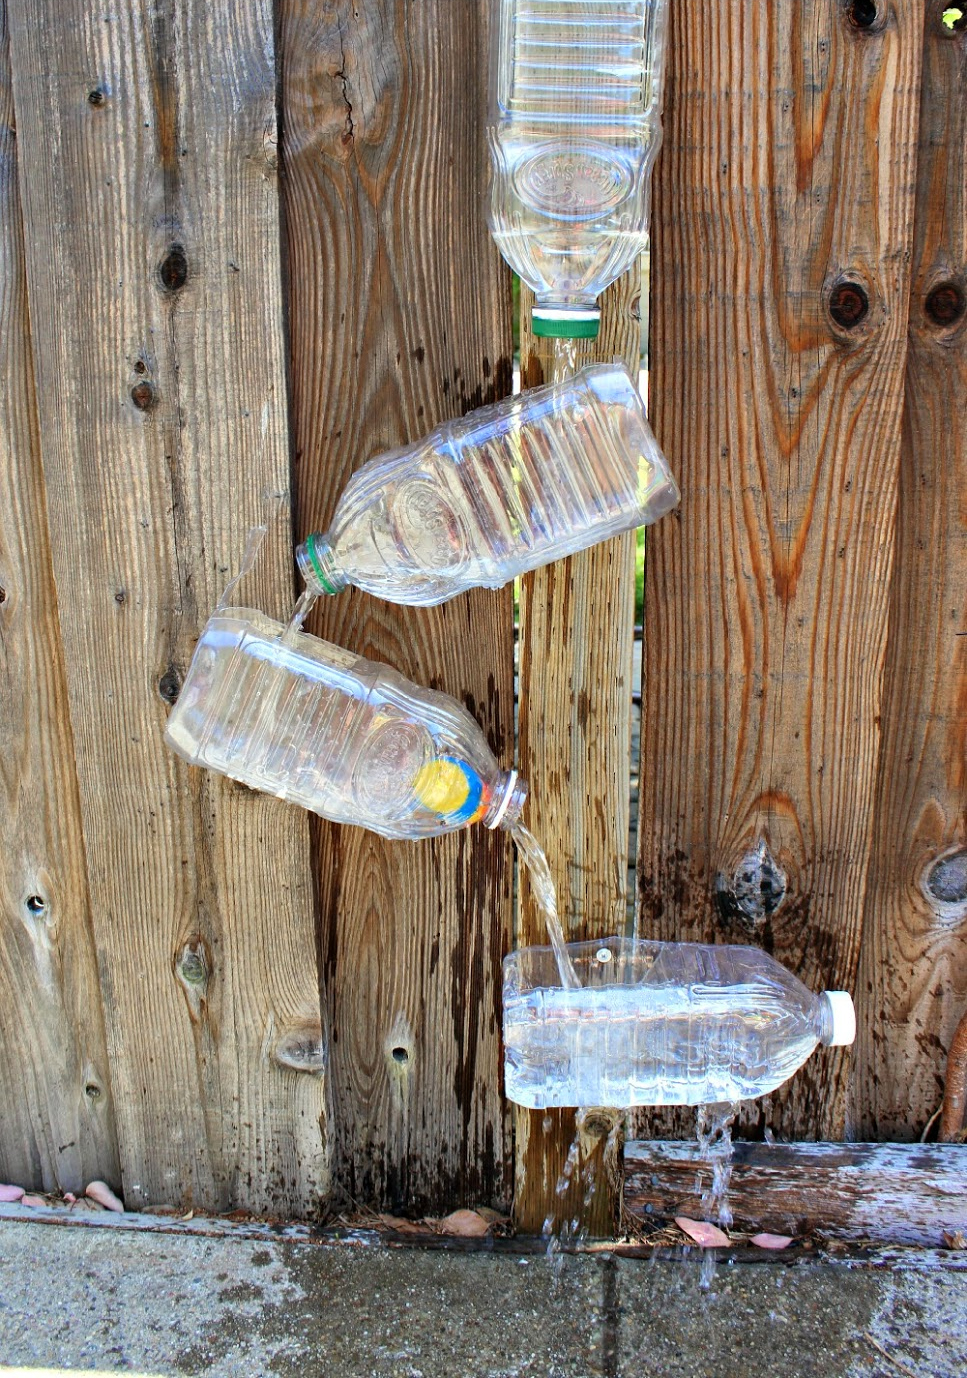 25 Ways To Repurpose Plastic Bottles Into Cute Home and Garden ...